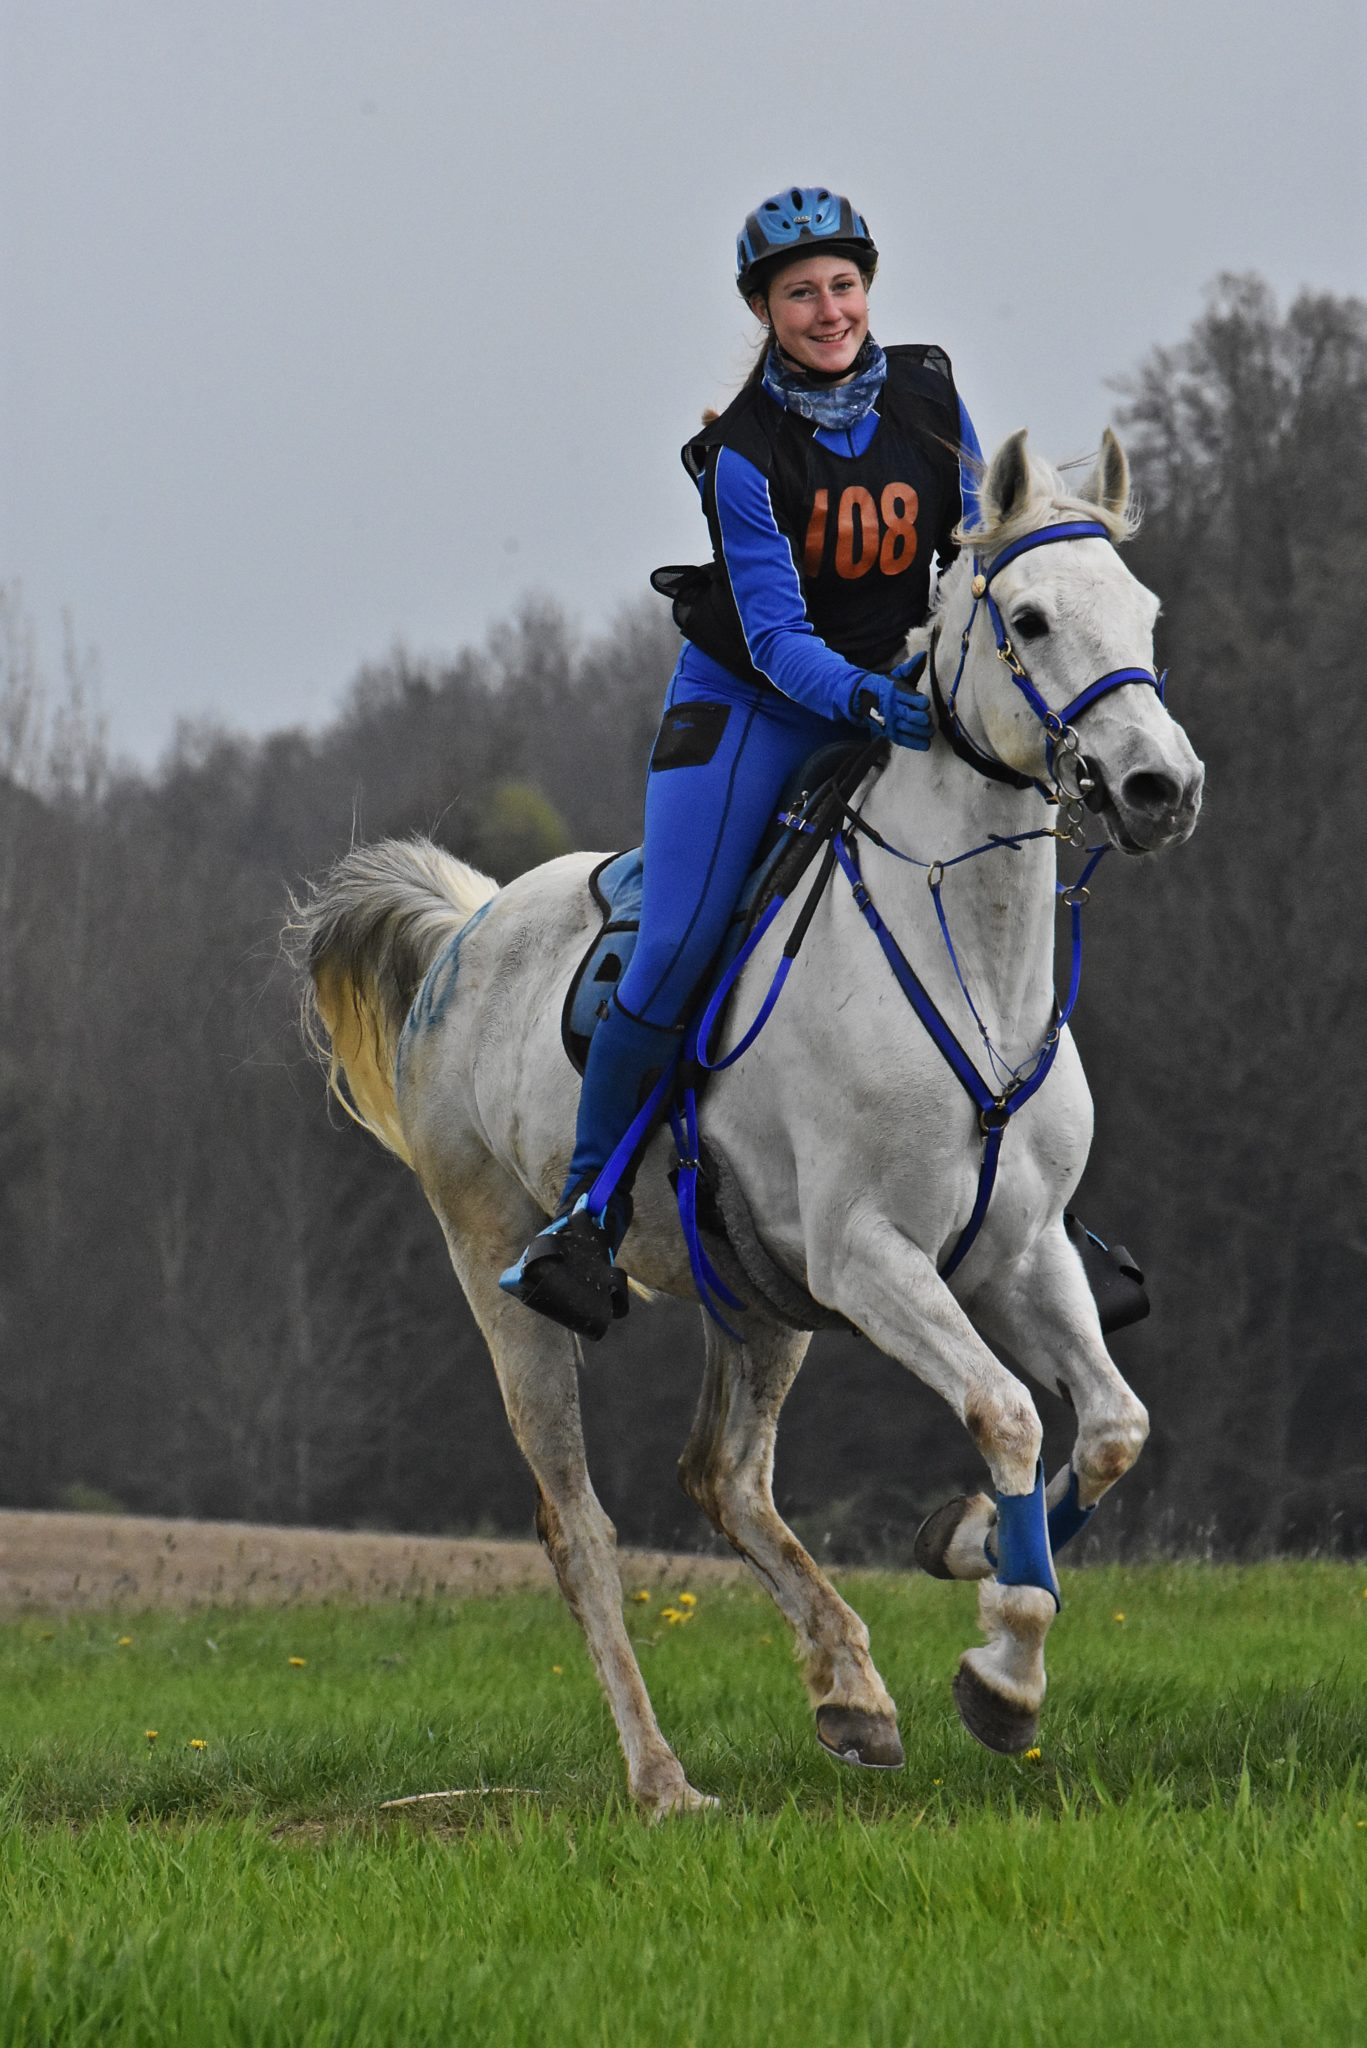 Endurance World Bavaria Spring. One of the leading riders.